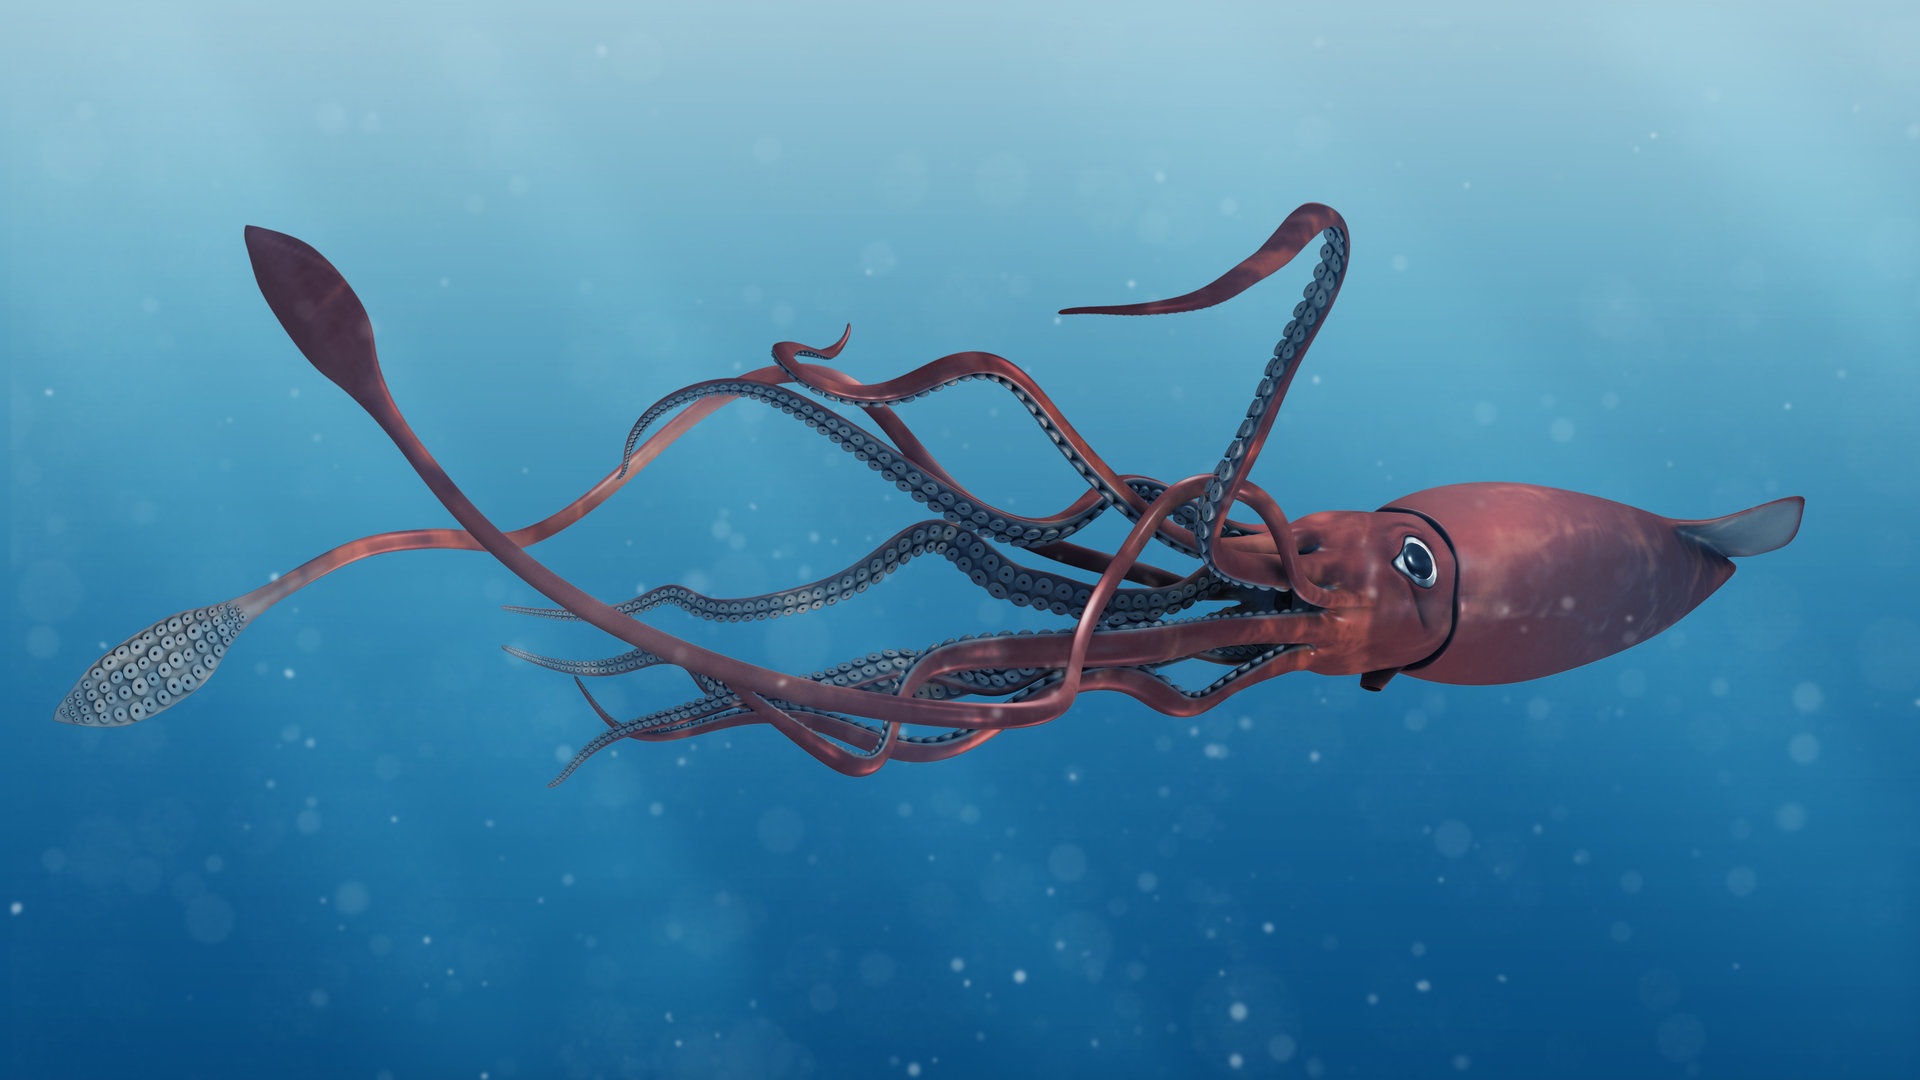 Colossal Squid and Giant Squid pictures the worlds largest invertebrates close ups of the tentacles suckers and hooks they use to catch prey